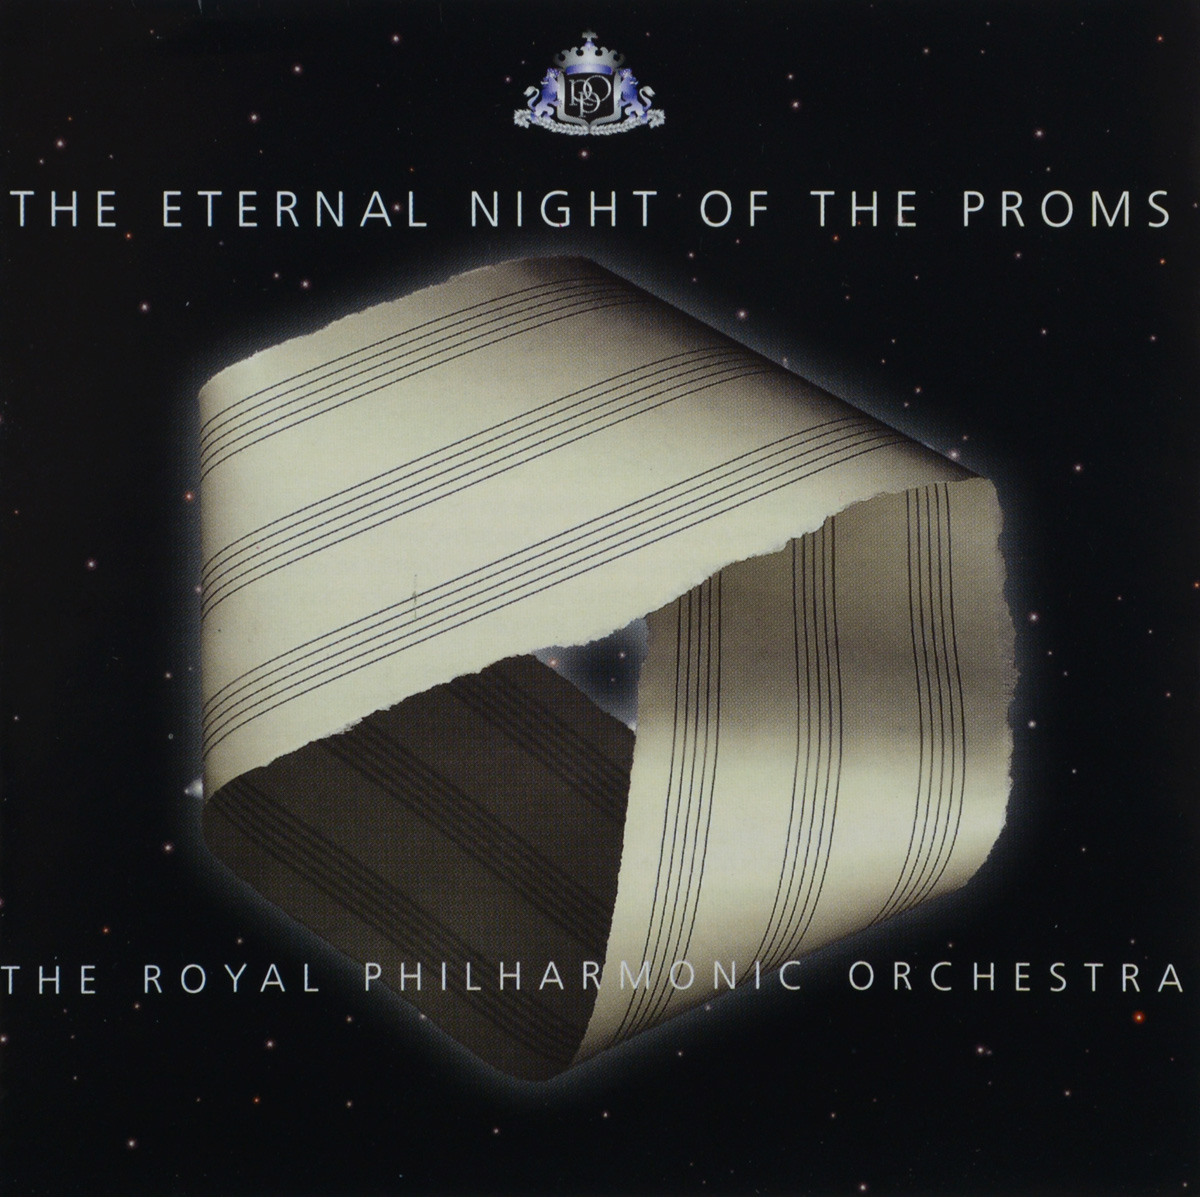 The Royal Philharmonic Orchestra The Royal Philharmonic Orchestra. The Eternal Night Of The Proms